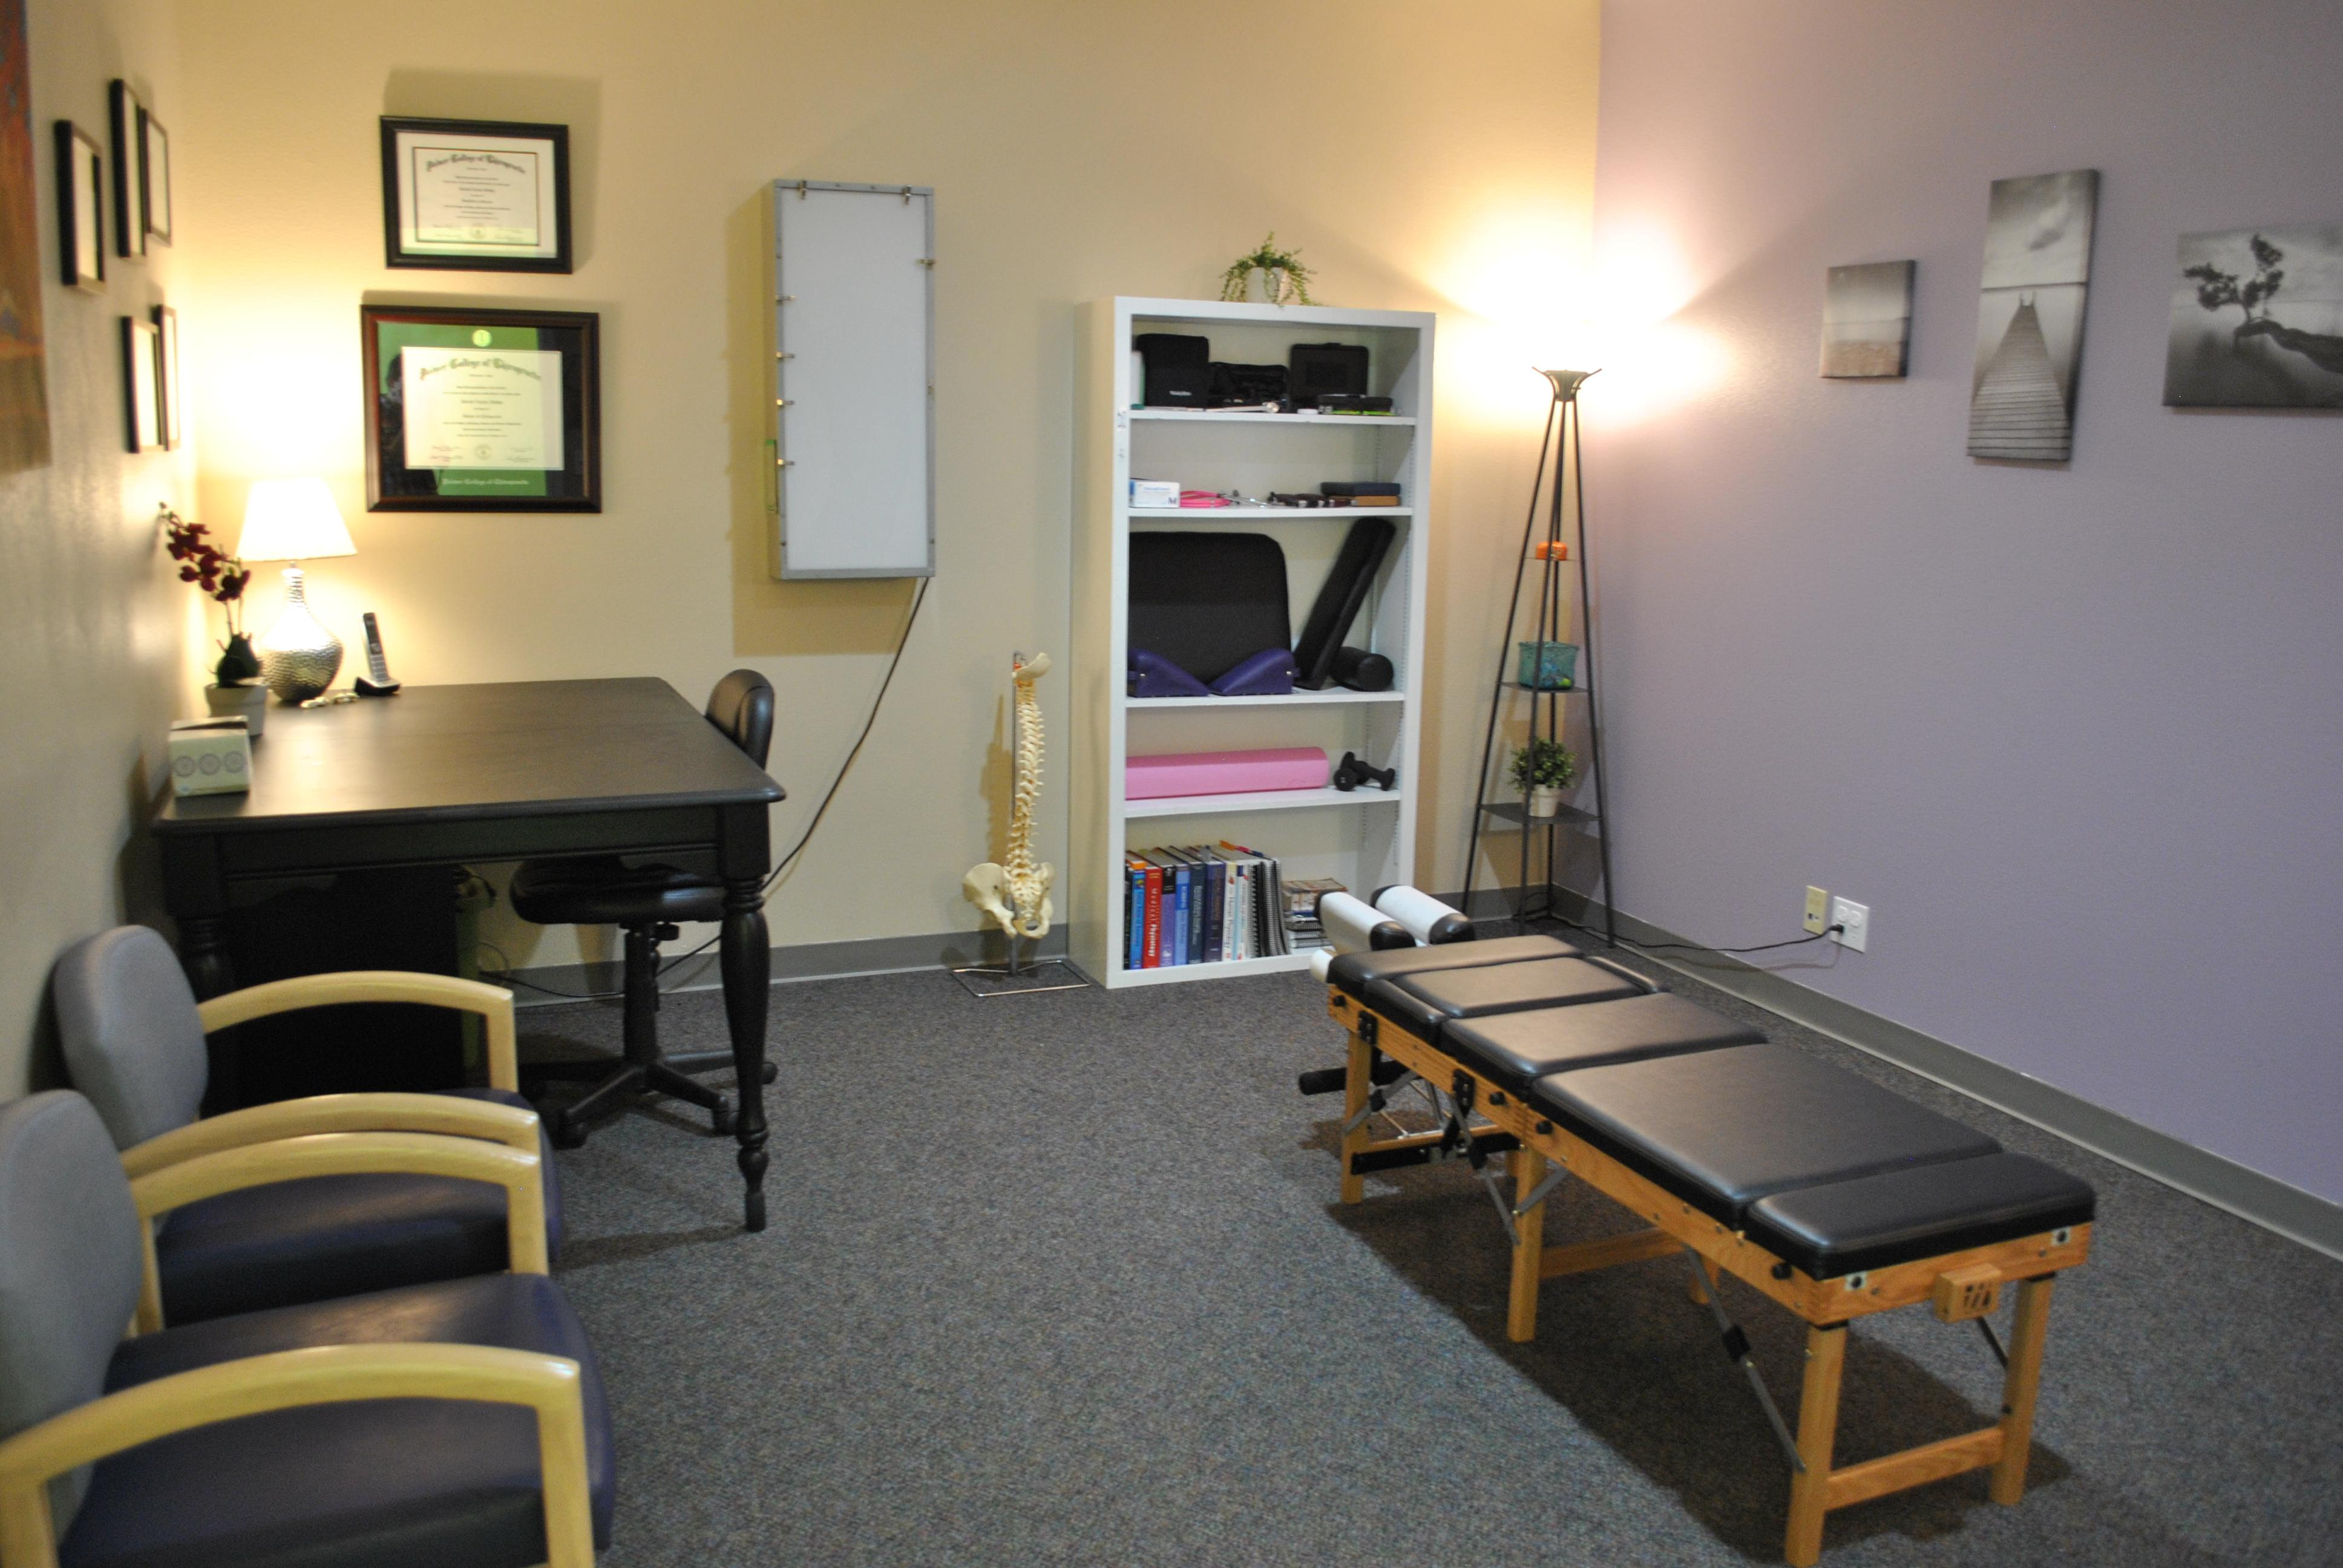 Life in Balance Family Chiropractic